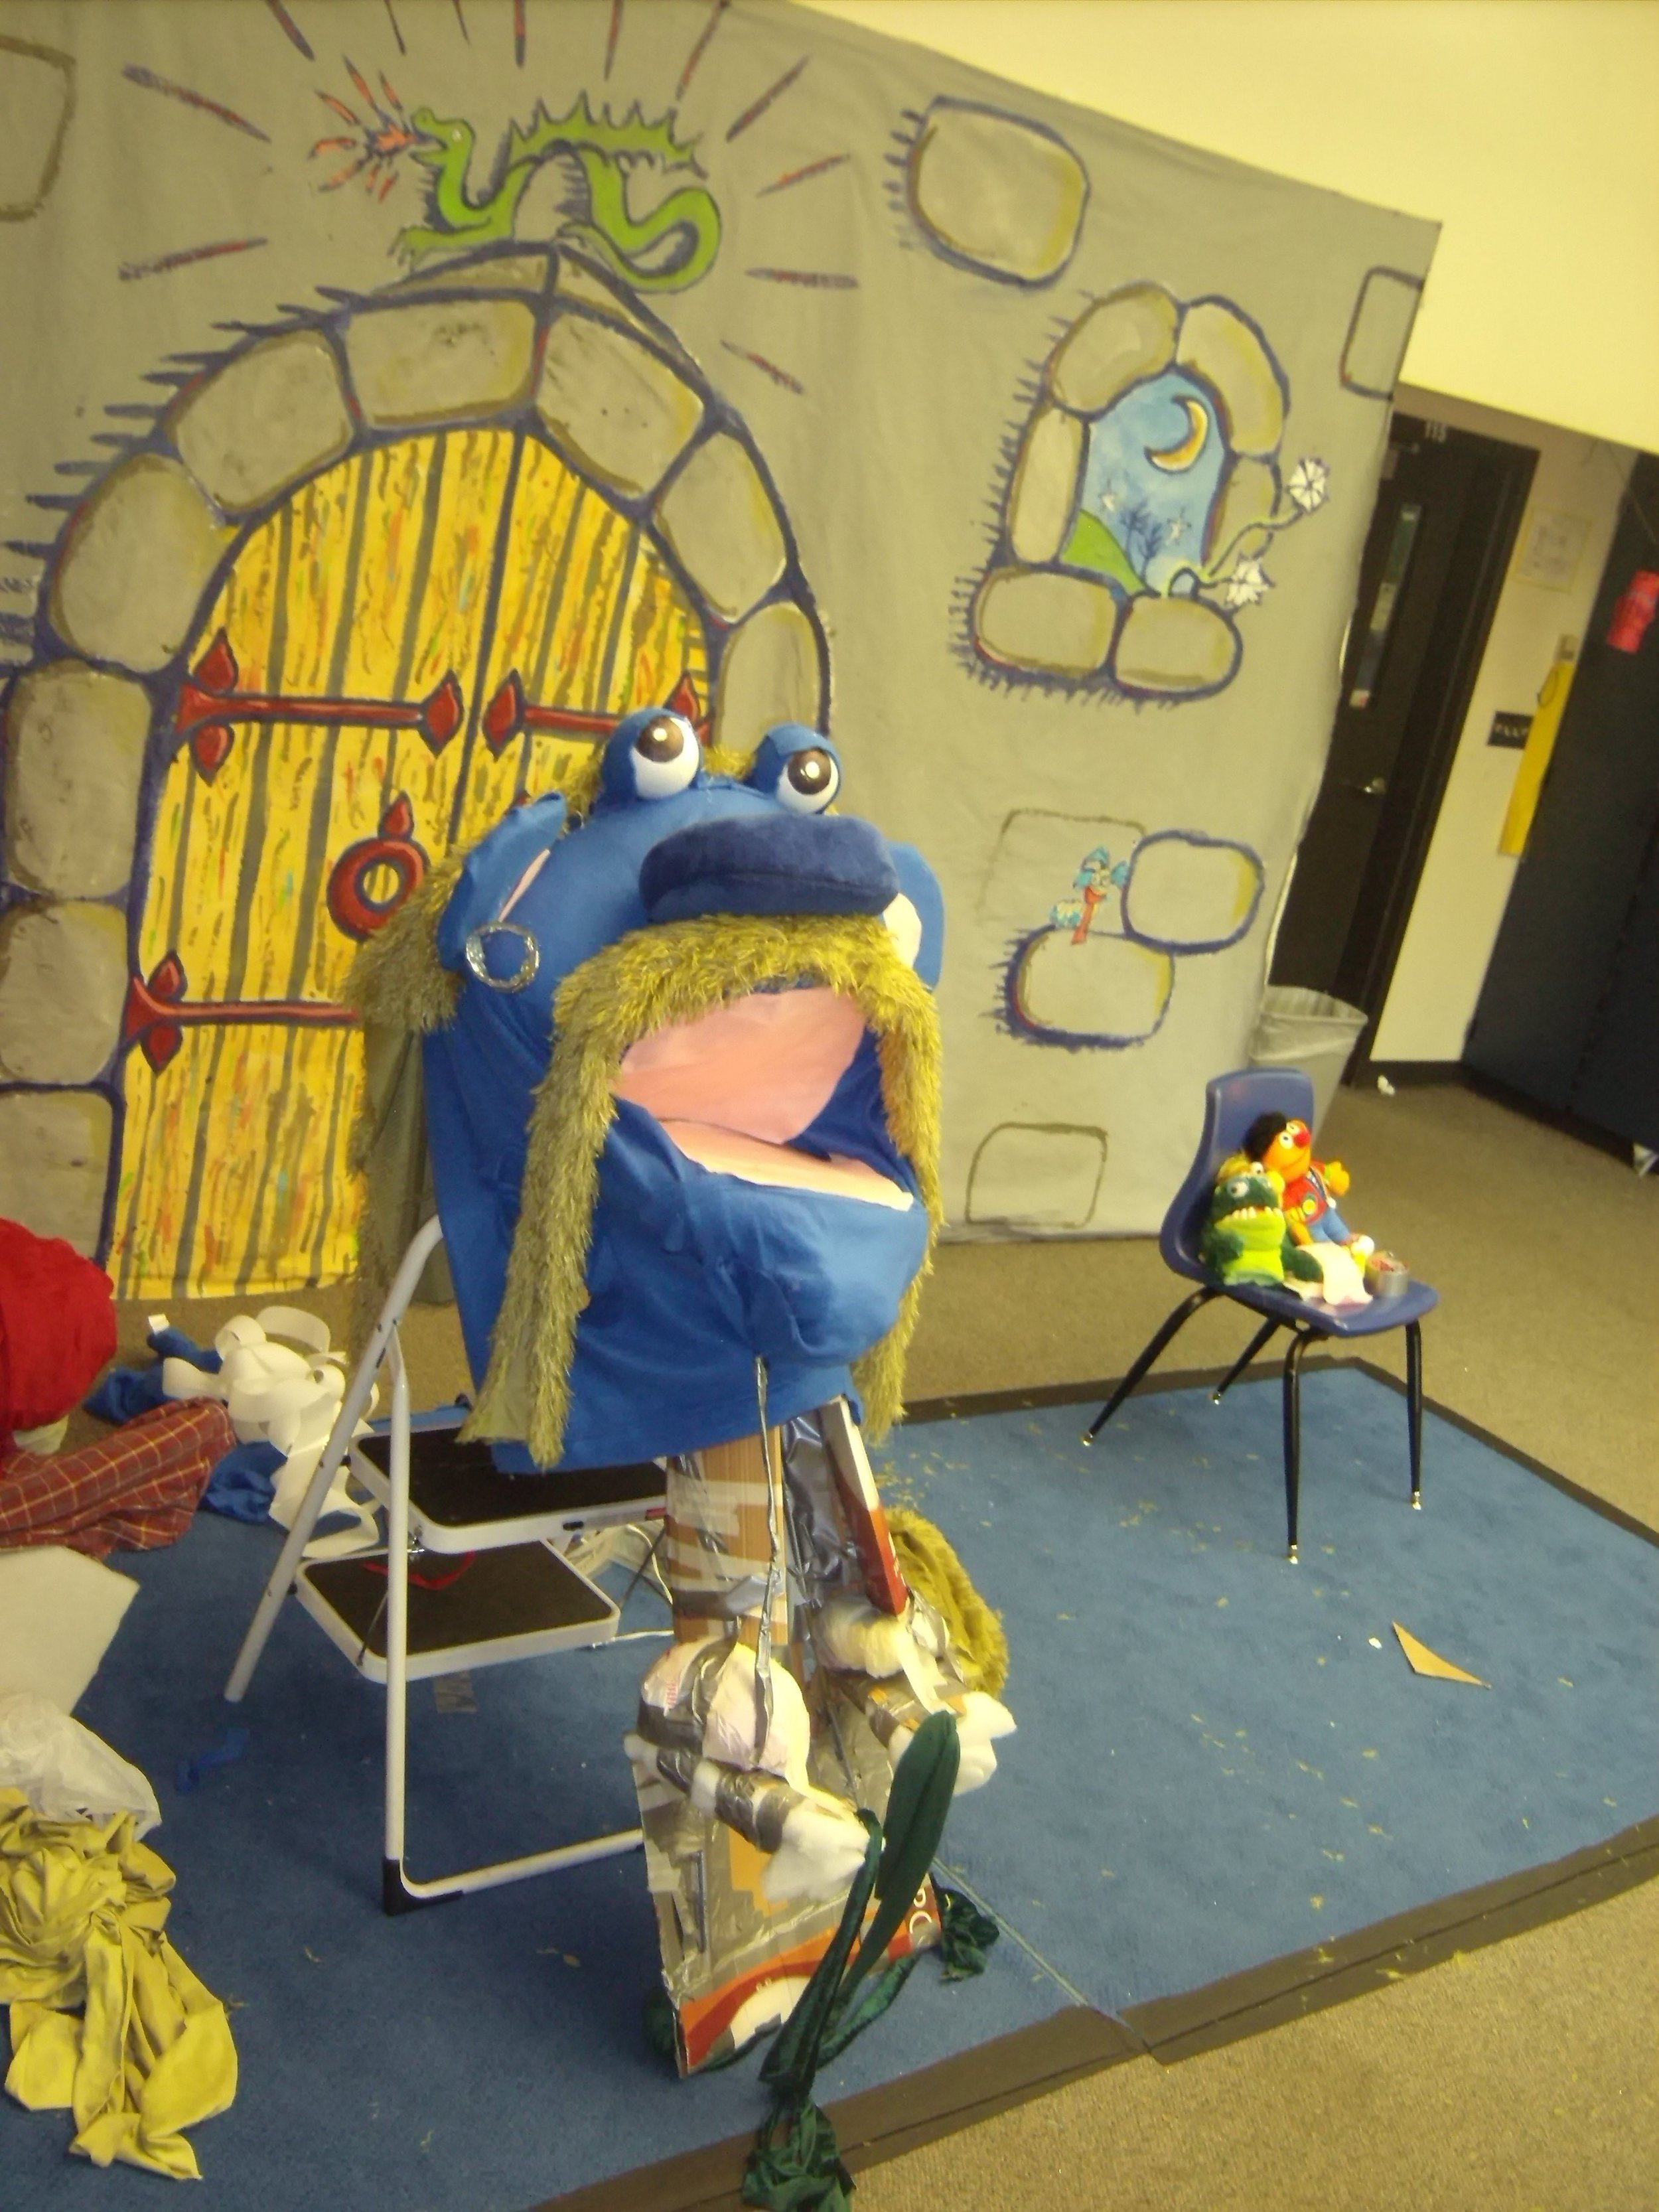 Christian Anne Smith Fairytale Theater Giant Puppet and Set (1).JPG